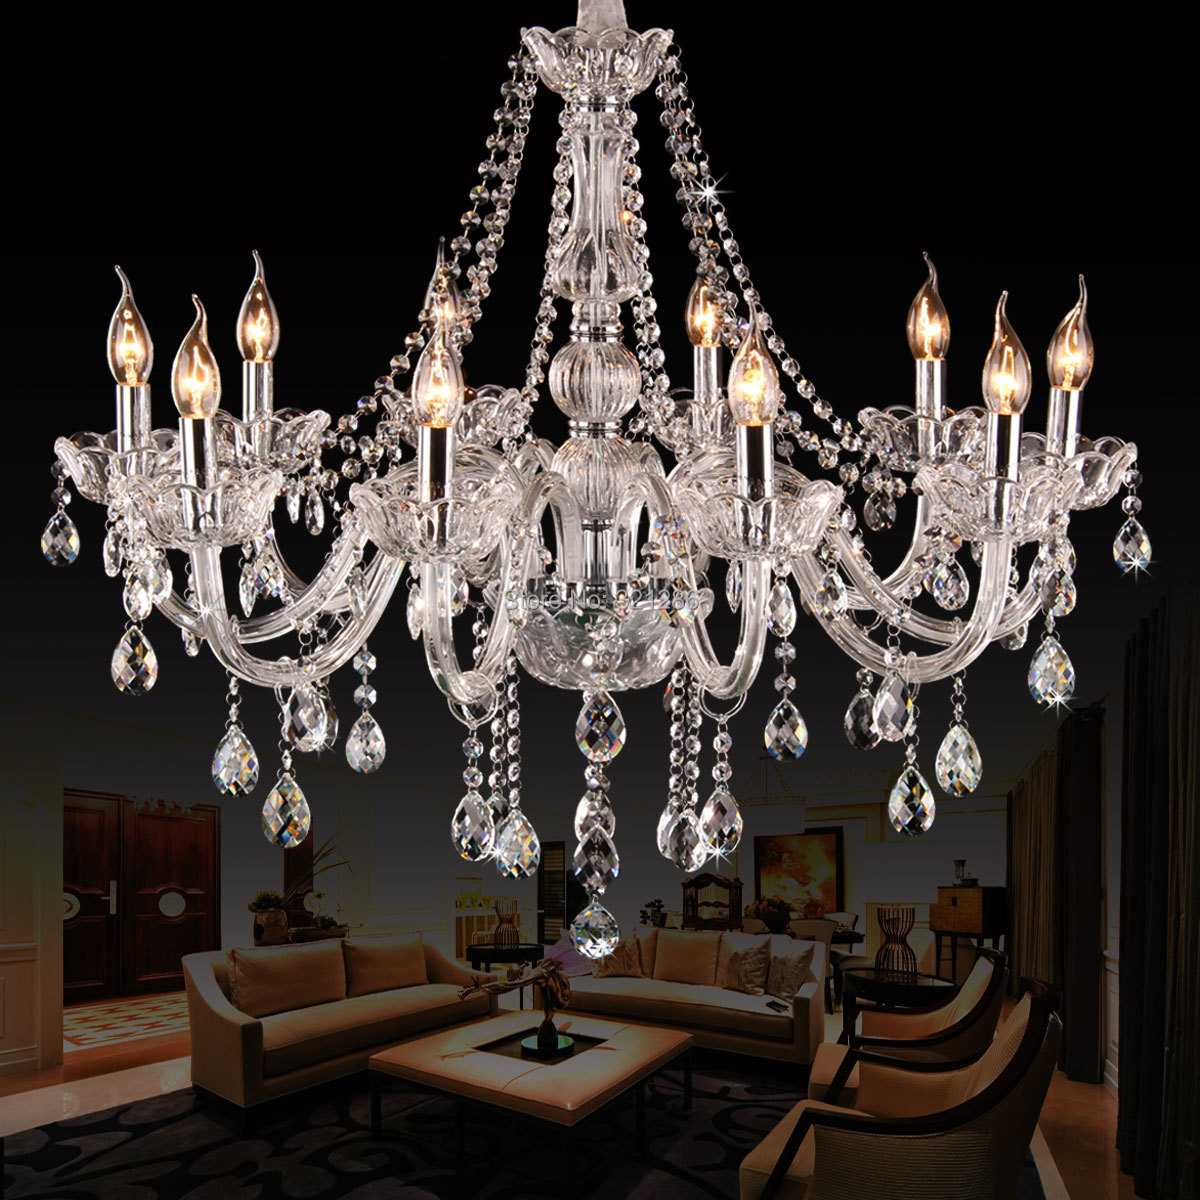 10 heads K9 crystal chandelier light living room lights bedroom lamp restaurant lamp brief modern chandelier lighting chandelier lighting crystal luxury modern chandeliers crystal bedroom light crystal chandelier lamp hanging room light lighting